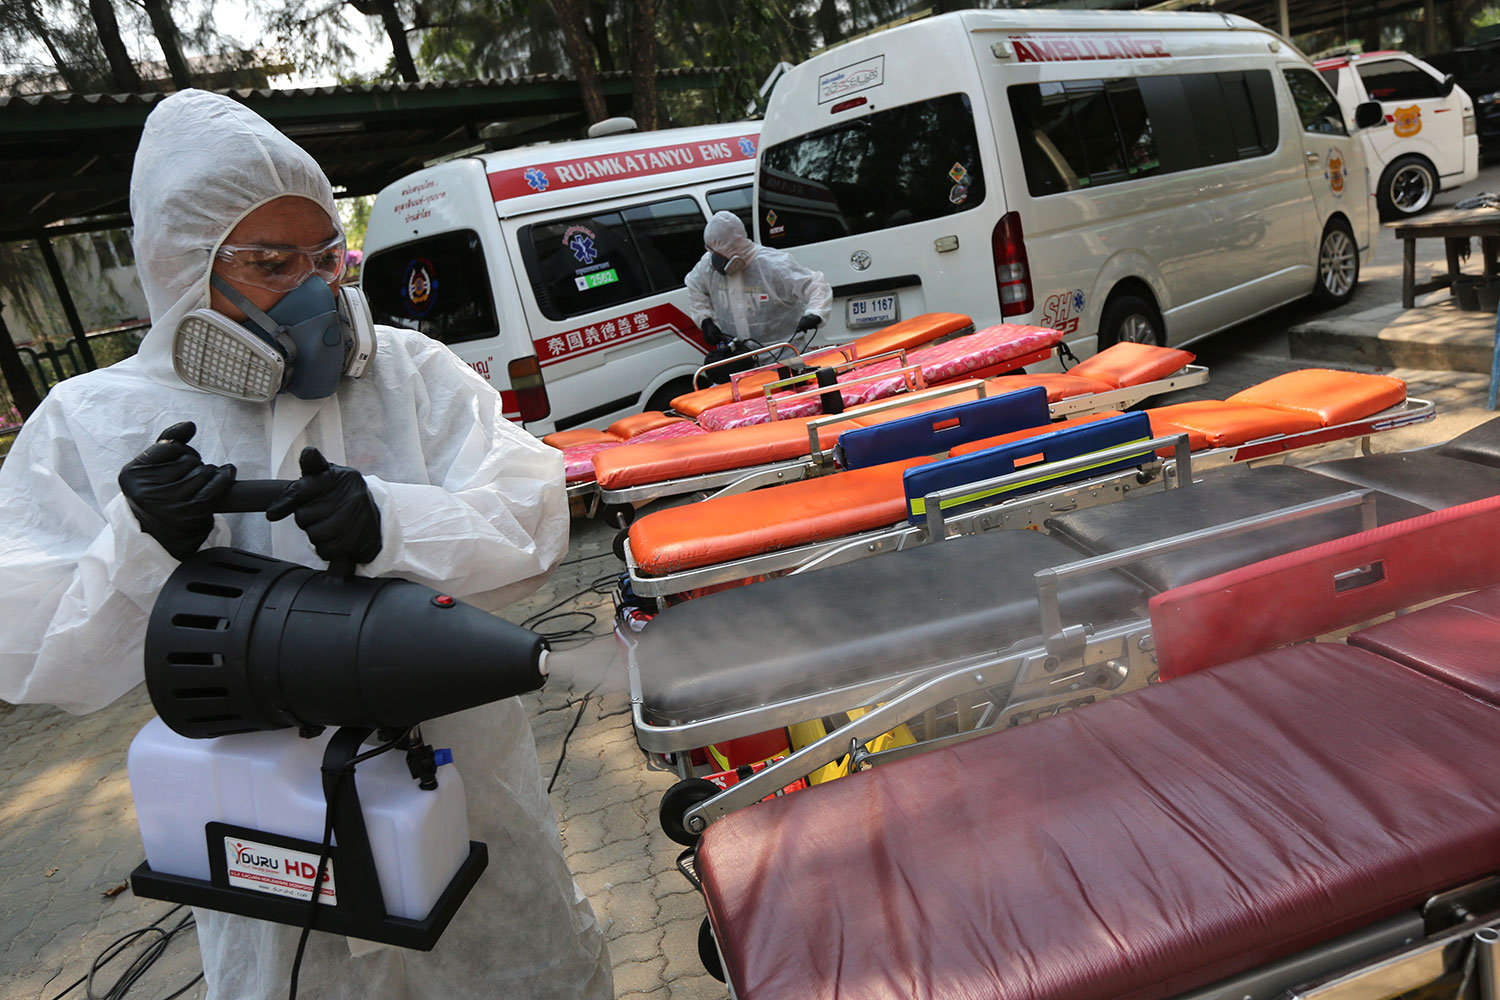 Just to be sure: A member of the Emergency Services Unit of Thailand sprays disinfectant at stretchers used by rescuers and ambulance staff to protect them against exposure to Covid-19 while transporting patients. (Photo by Wichan Charoenkiatpakul)